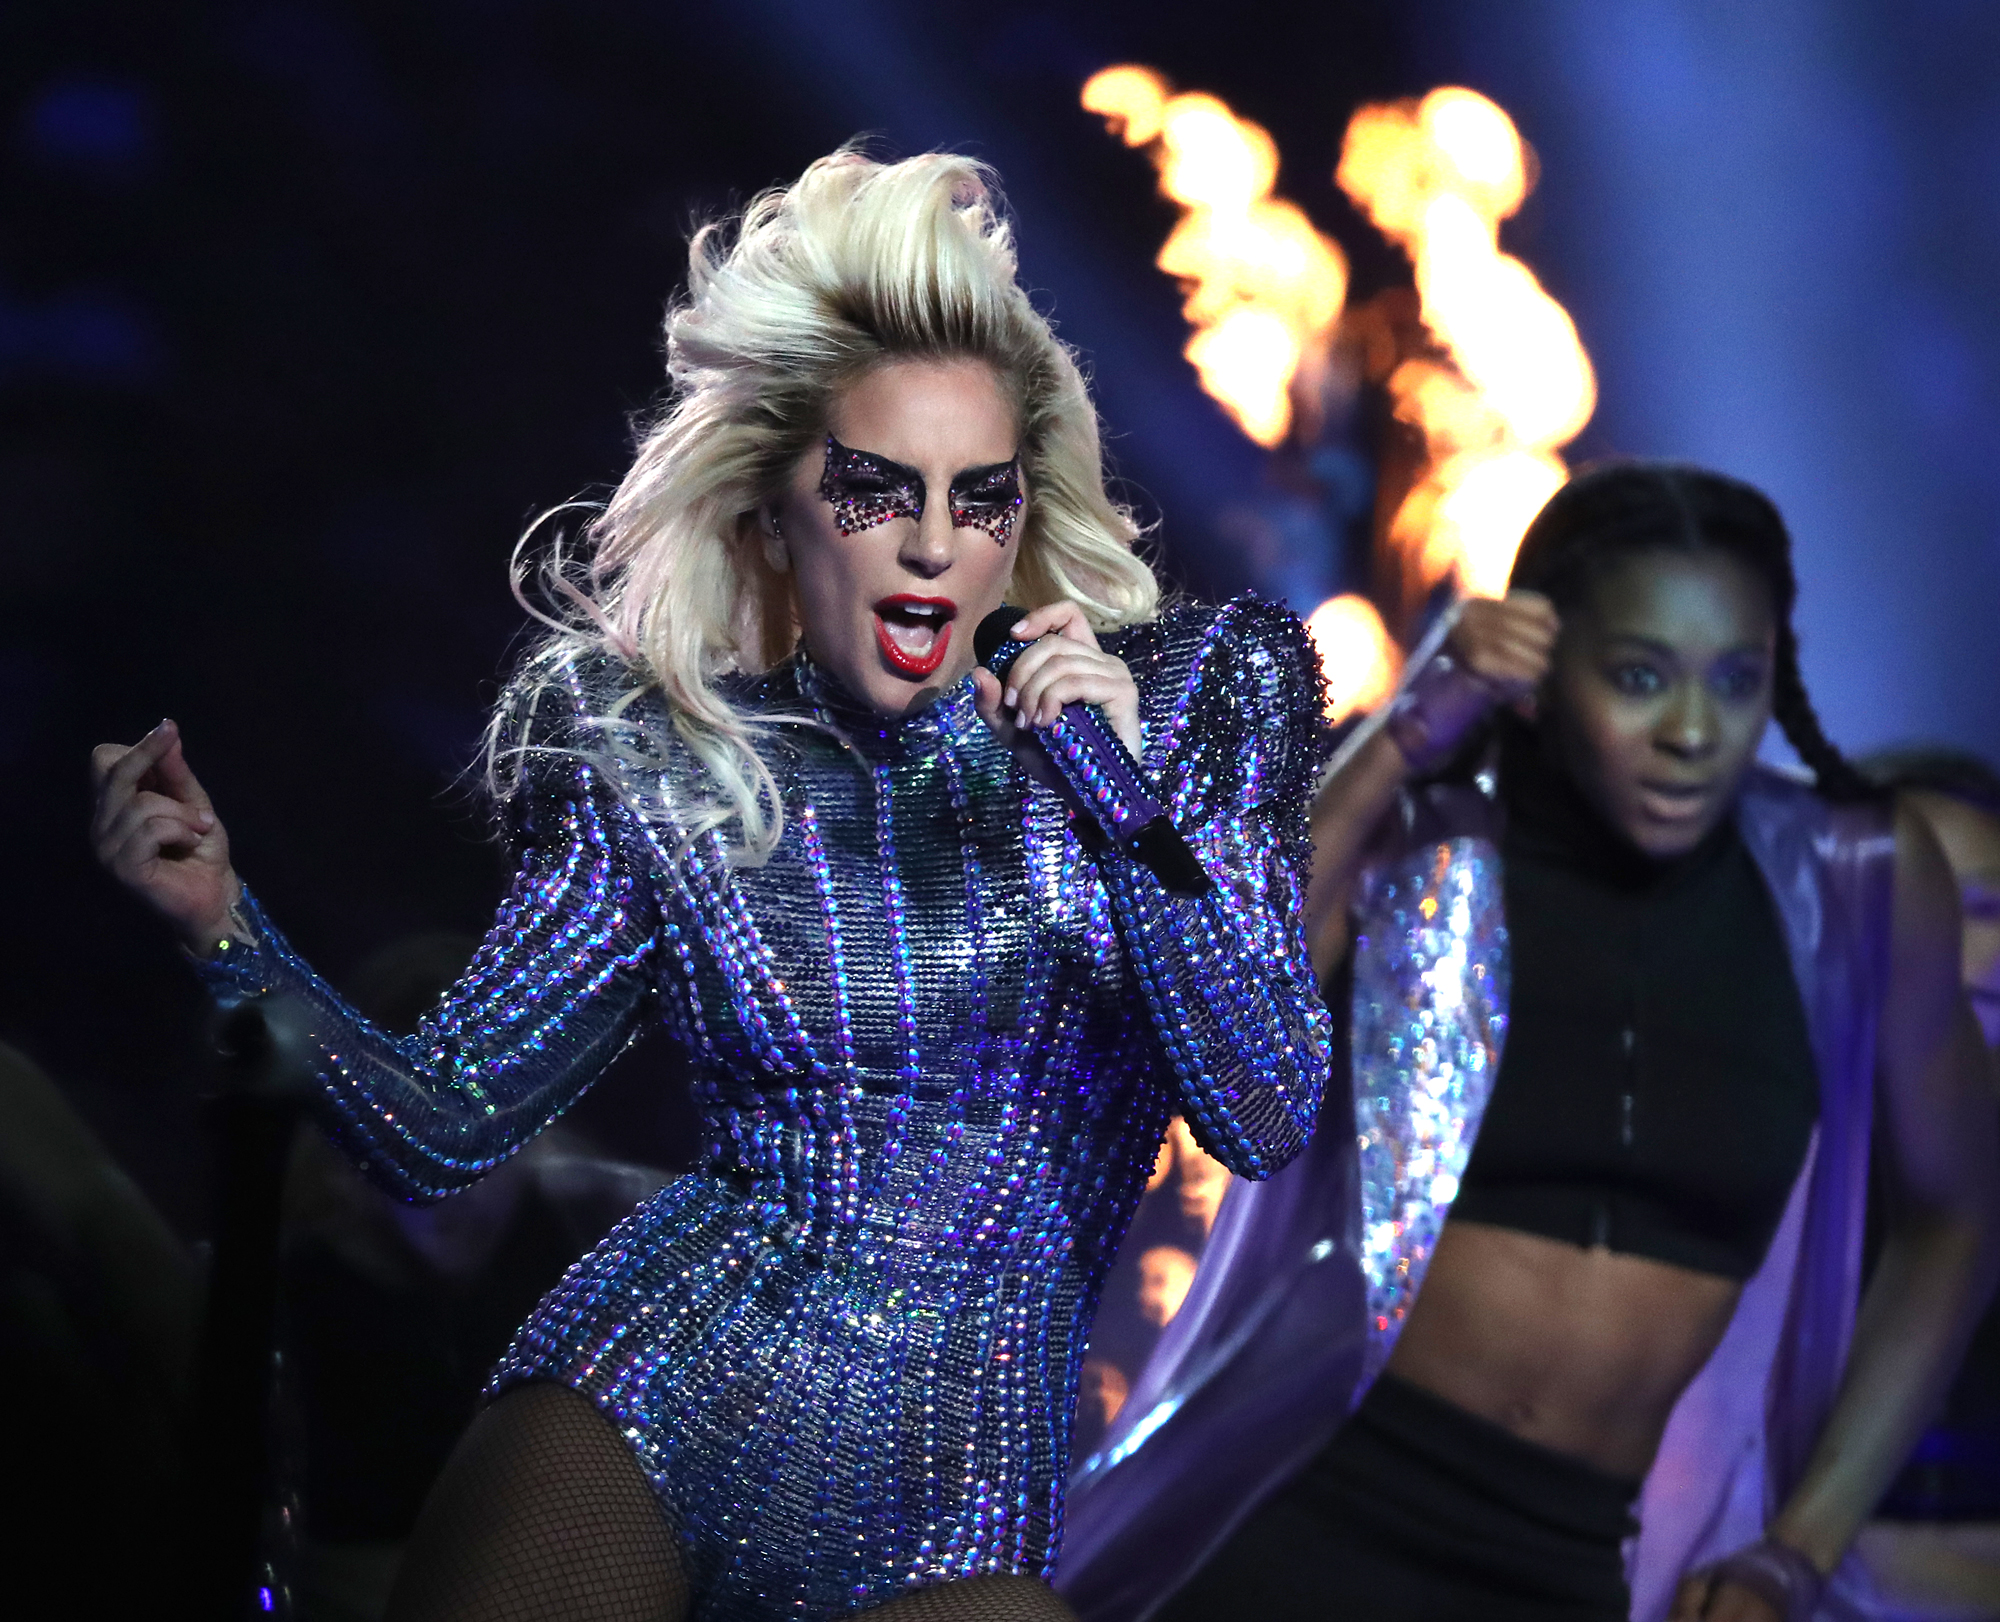 Lady Gaga performs at halftime at NRG Stadium in the Super Bowl. The Atlanta Falcons play the New England Patriots in Super Bowl LI at NRG Stadium in Houston on Feb. 5, 2017.